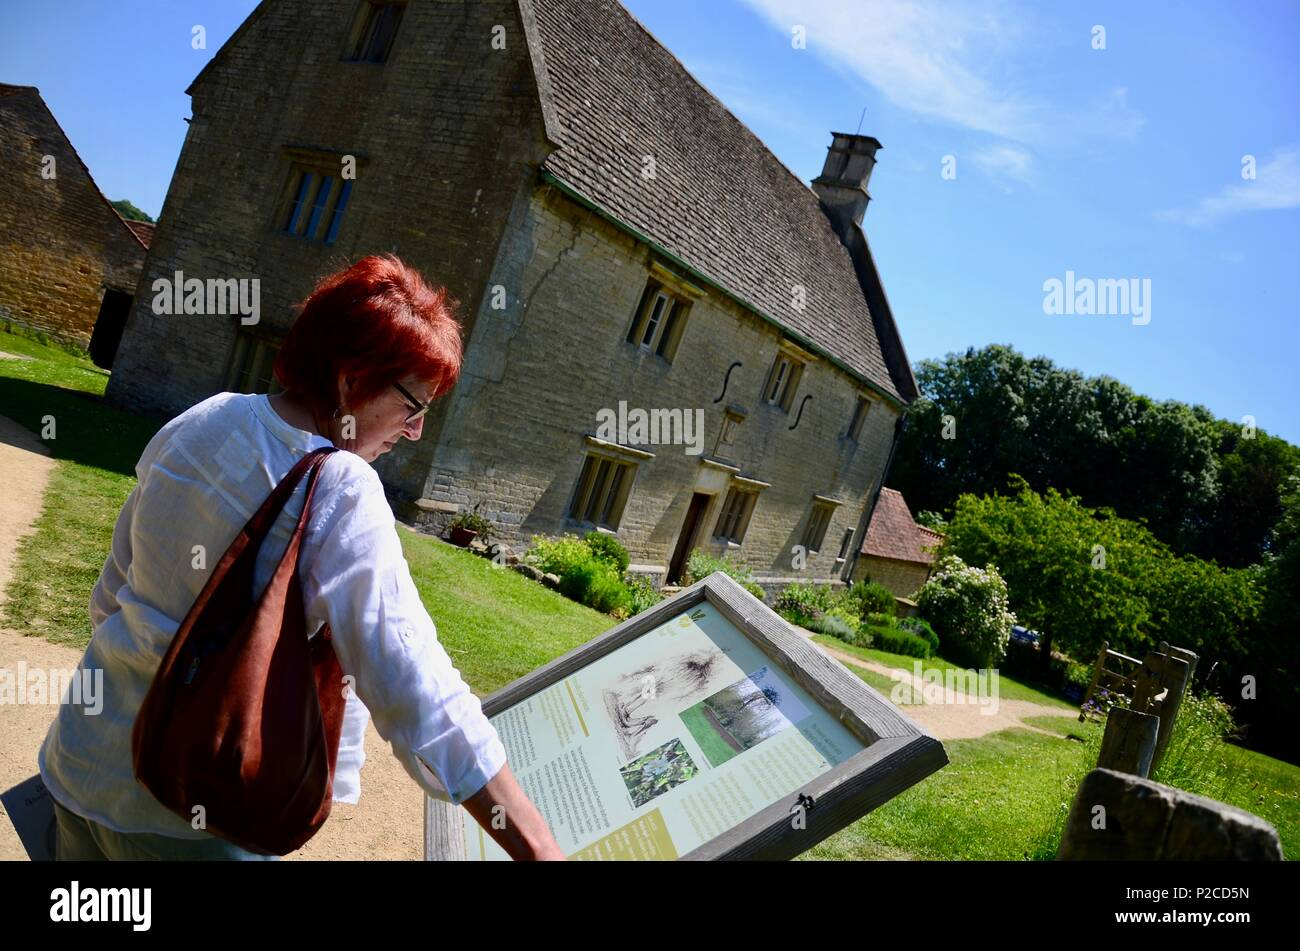 Woman looking at information board, Woolsthorpe Manor, Lincolnshire, home of the scientist and mathematician Sir Isaac Newton. - Stock Image